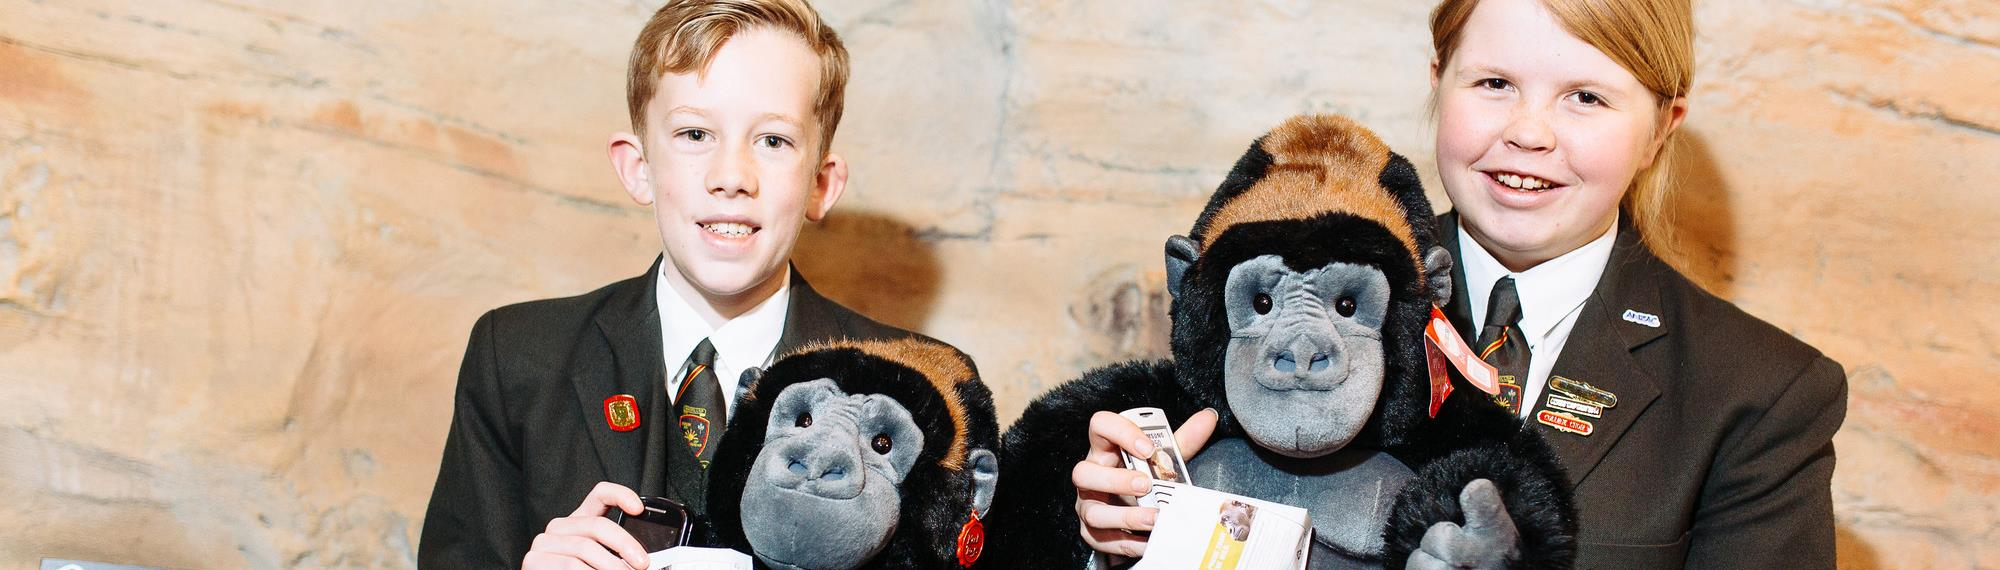 Two students holding plush gorillas standing next to a phone recycle bin.